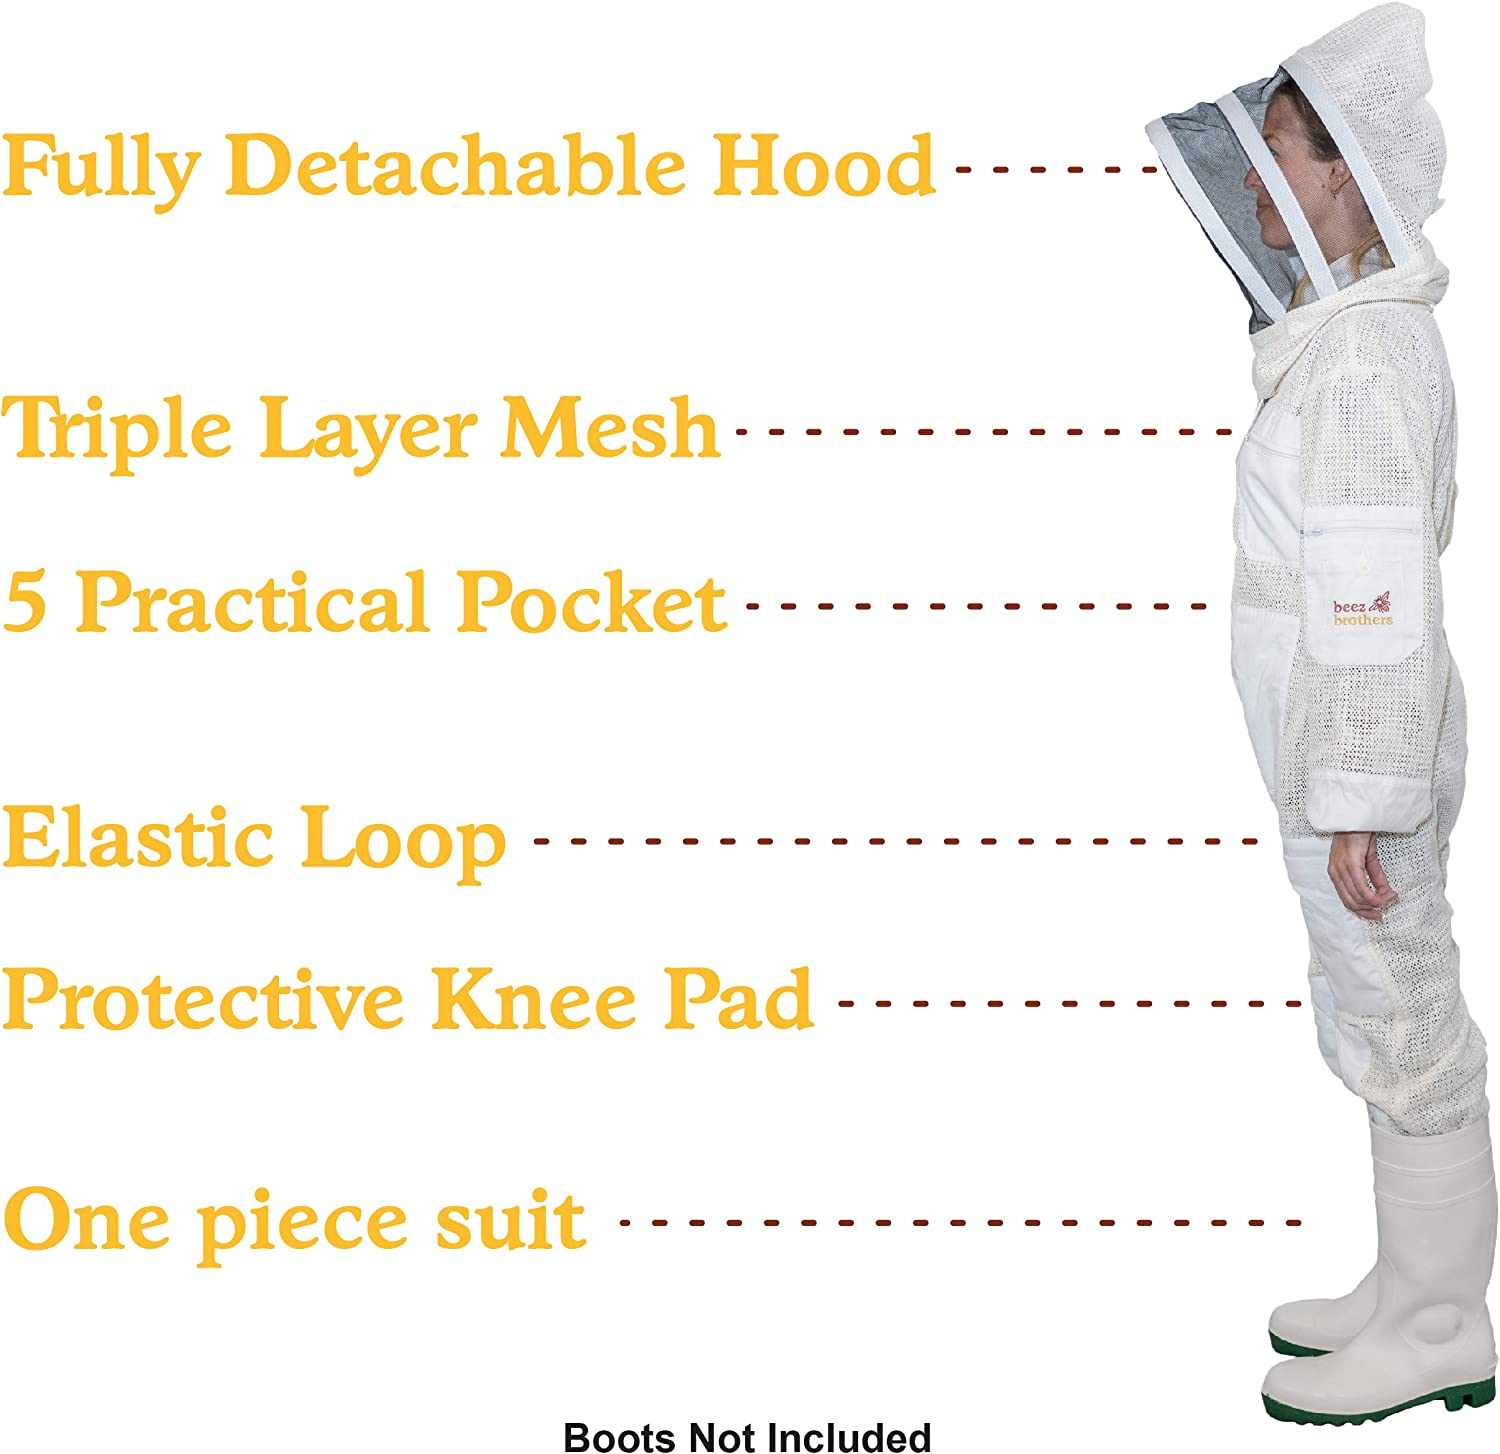 3 Layer Aerated//Ventilated Mesh Fabric for Heat Regulation Fits Professional and Beginner Apiarist BEEZ BROTHERS BEEKEEPING SUIT Beekeeper Costume Unisex with Veil for Maximal Protection